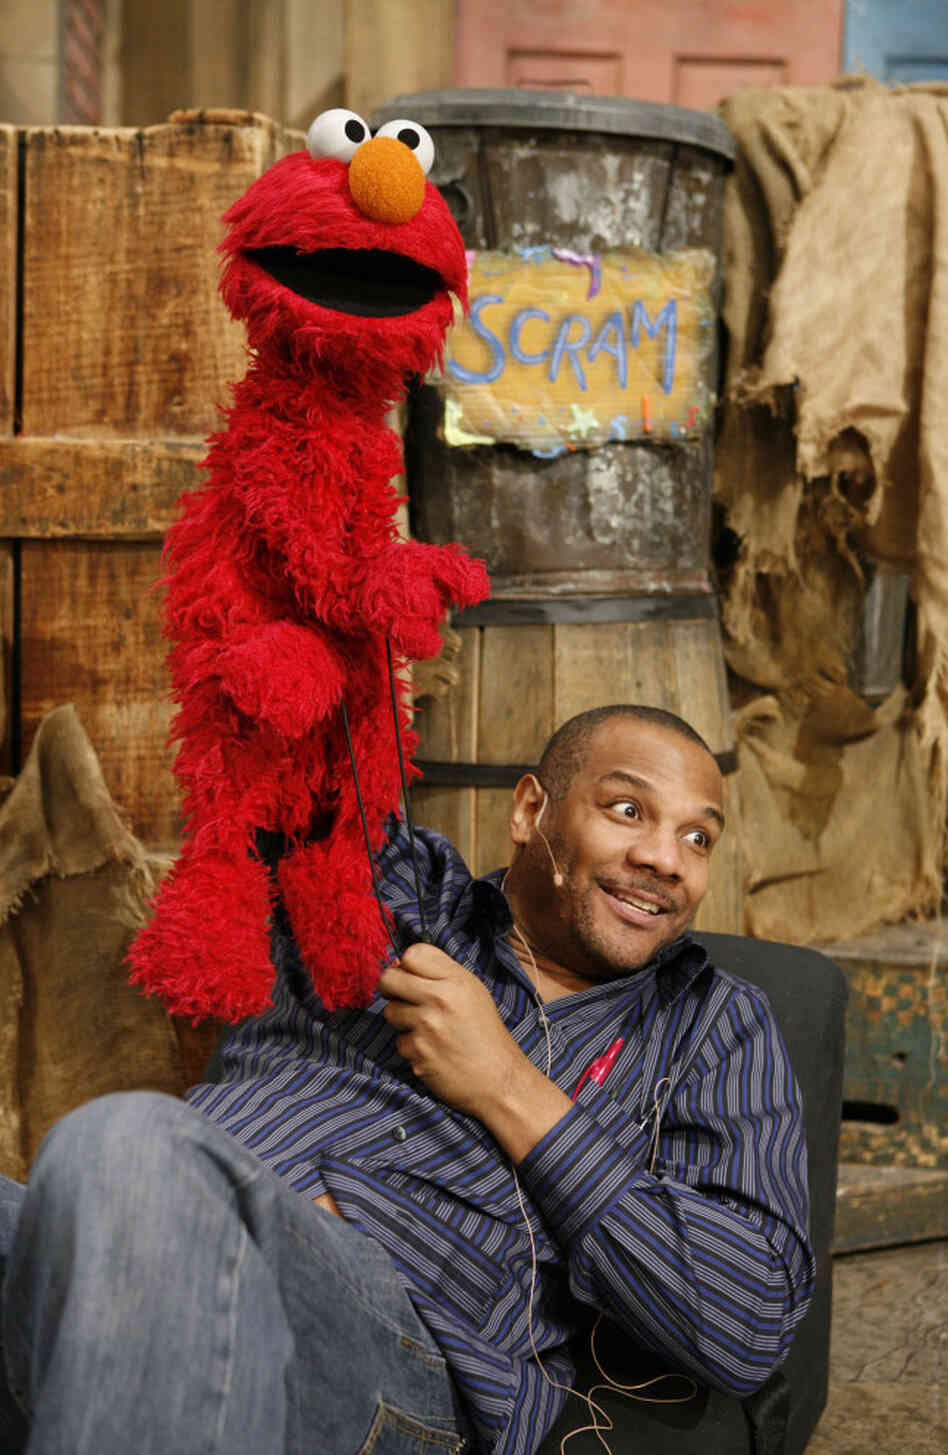 Elmo and Kevin Clash, photographed on the Sesame Street set in 2006.